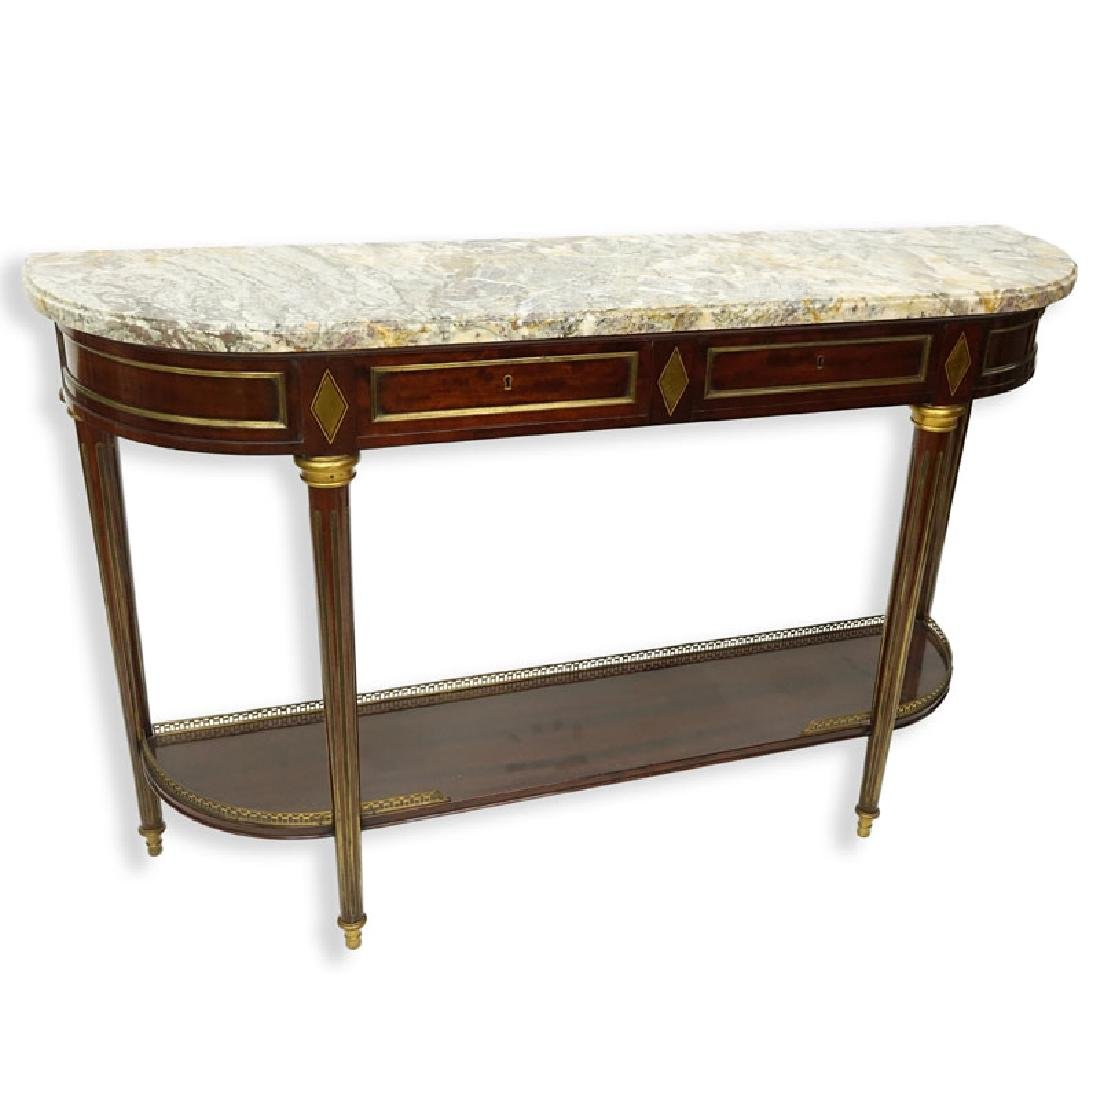 Earyly to Mid 20th Century French Louis XVI Style Gilt